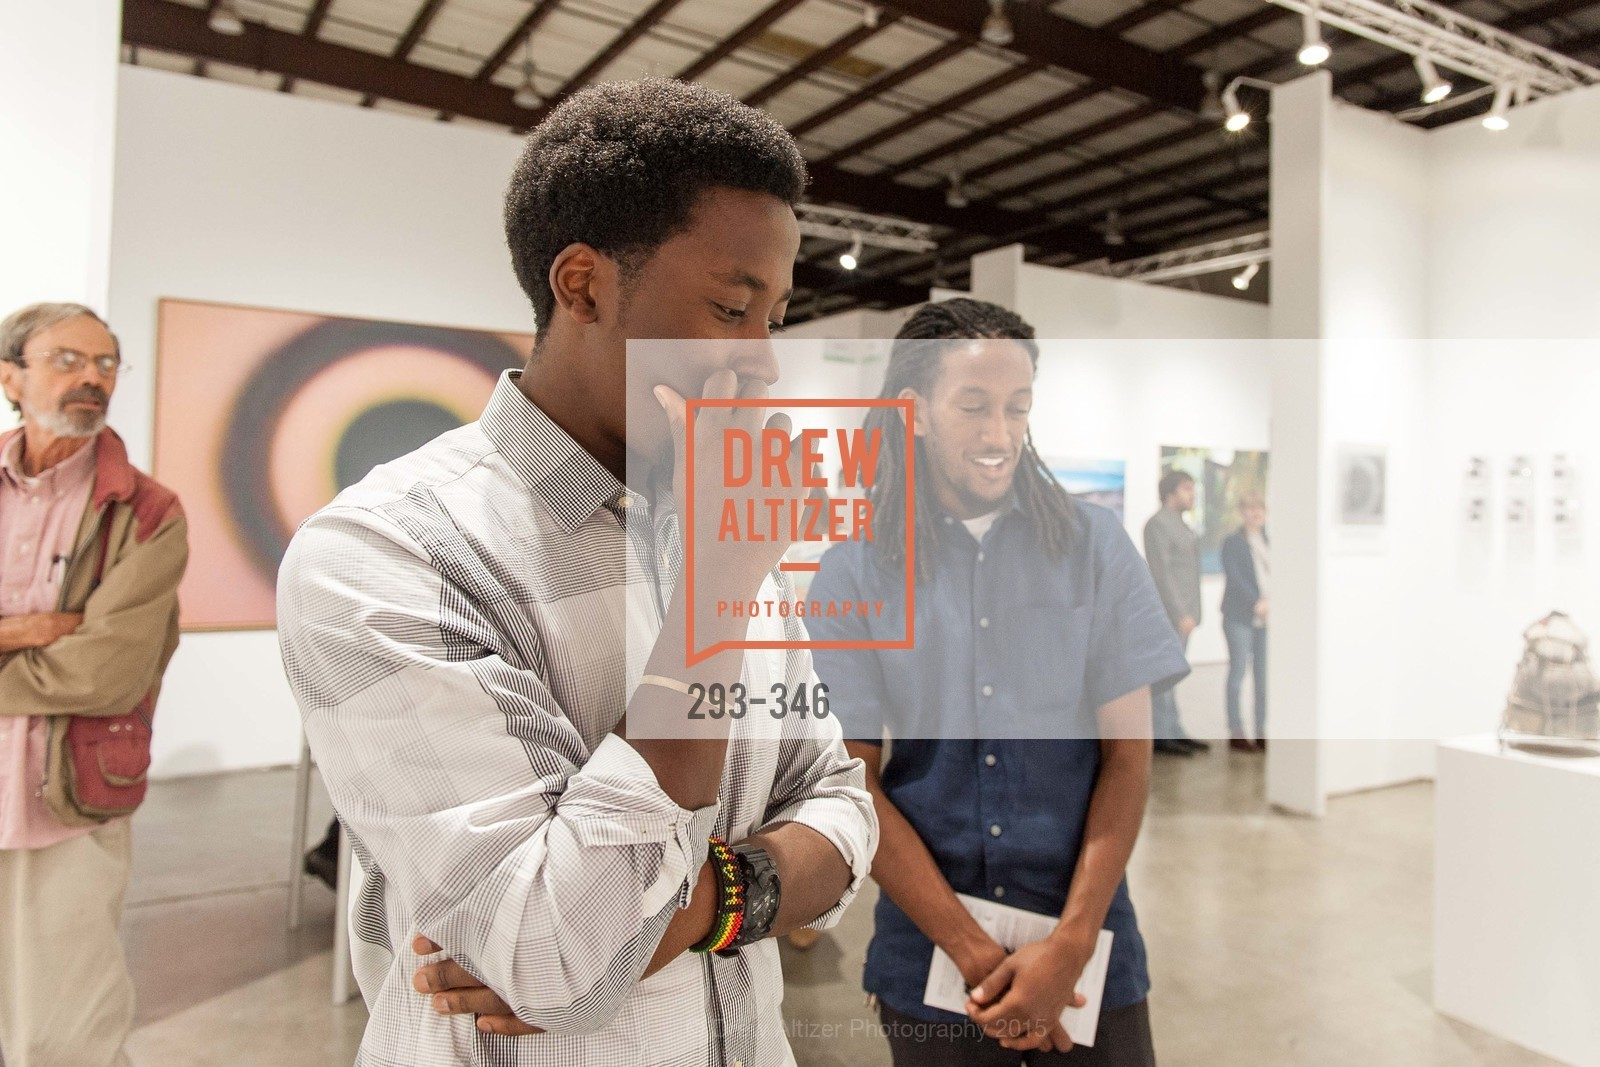 David Tim, Yoni Asega, Art Miami Presents: Art Silicon Valley, San Mateo County Event Center. 1346 Saratoga Dr, October 8th, 2015,Drew Altizer, Drew Altizer Photography, full-service agency, private events, San Francisco photographer, photographer california